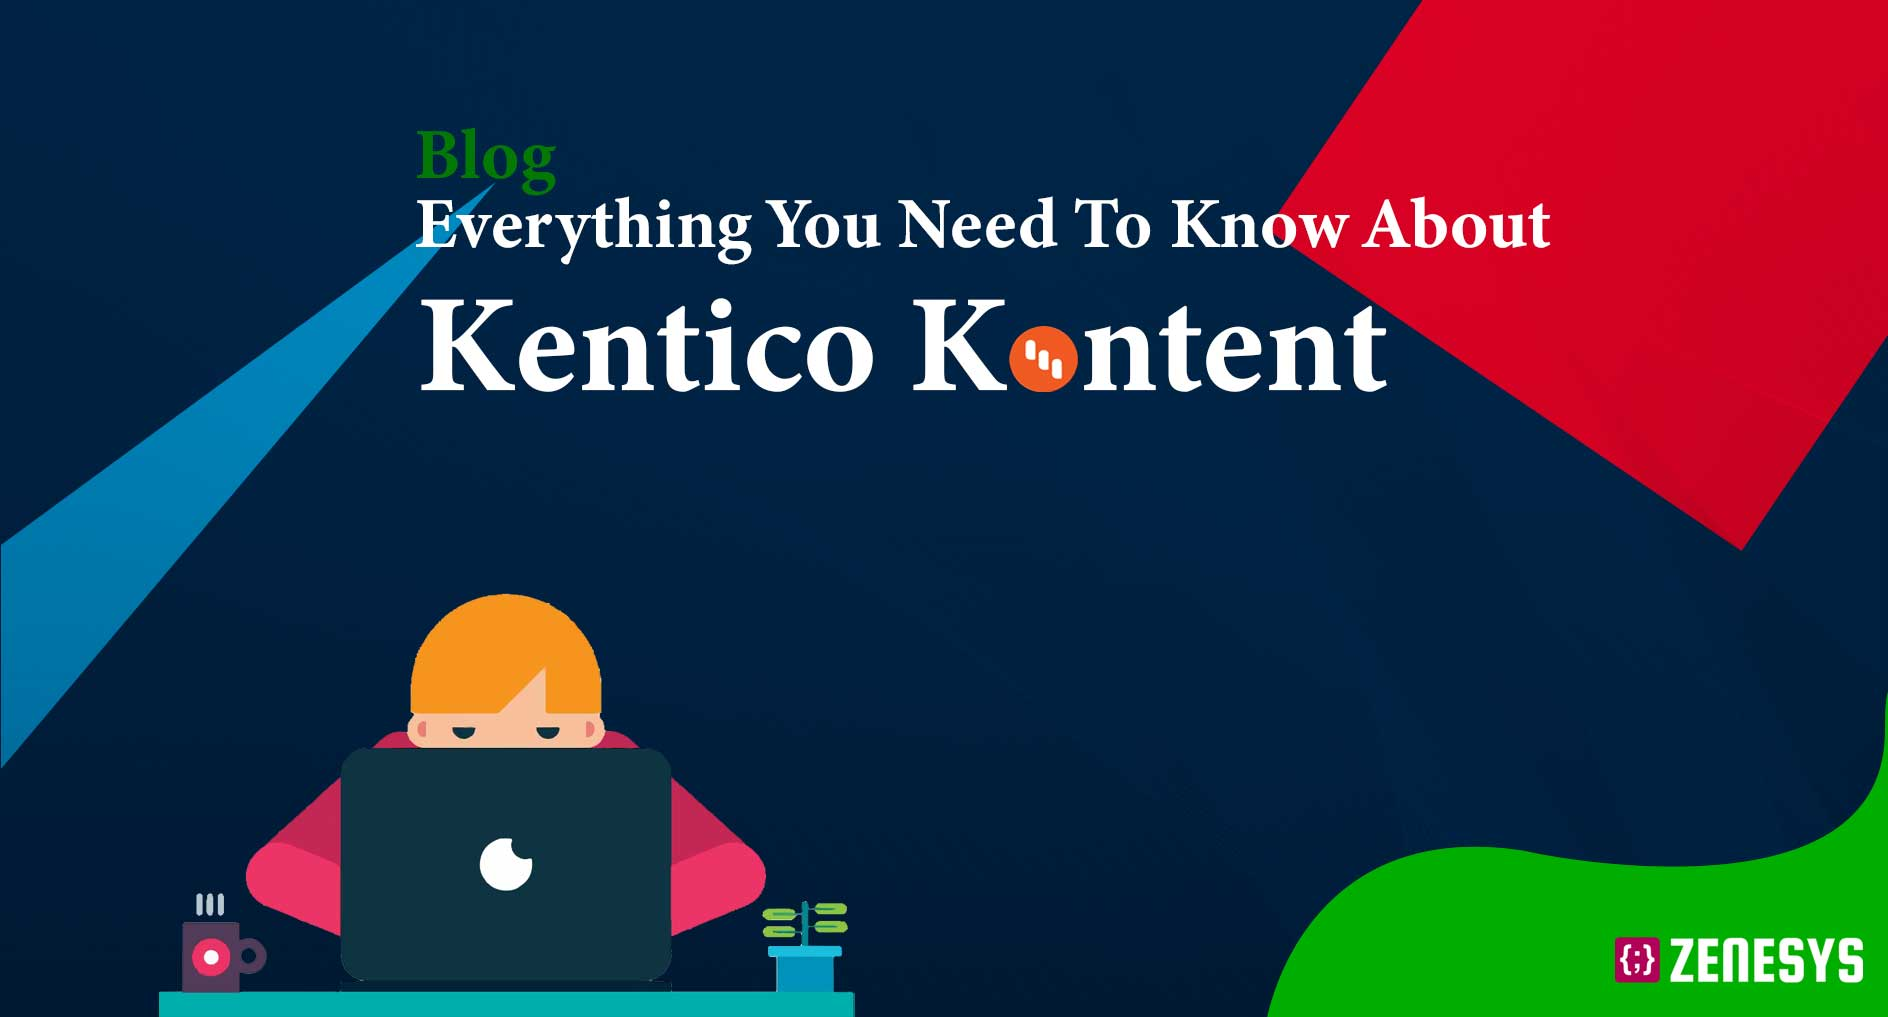 Everything you need to know about Kentico Kontent